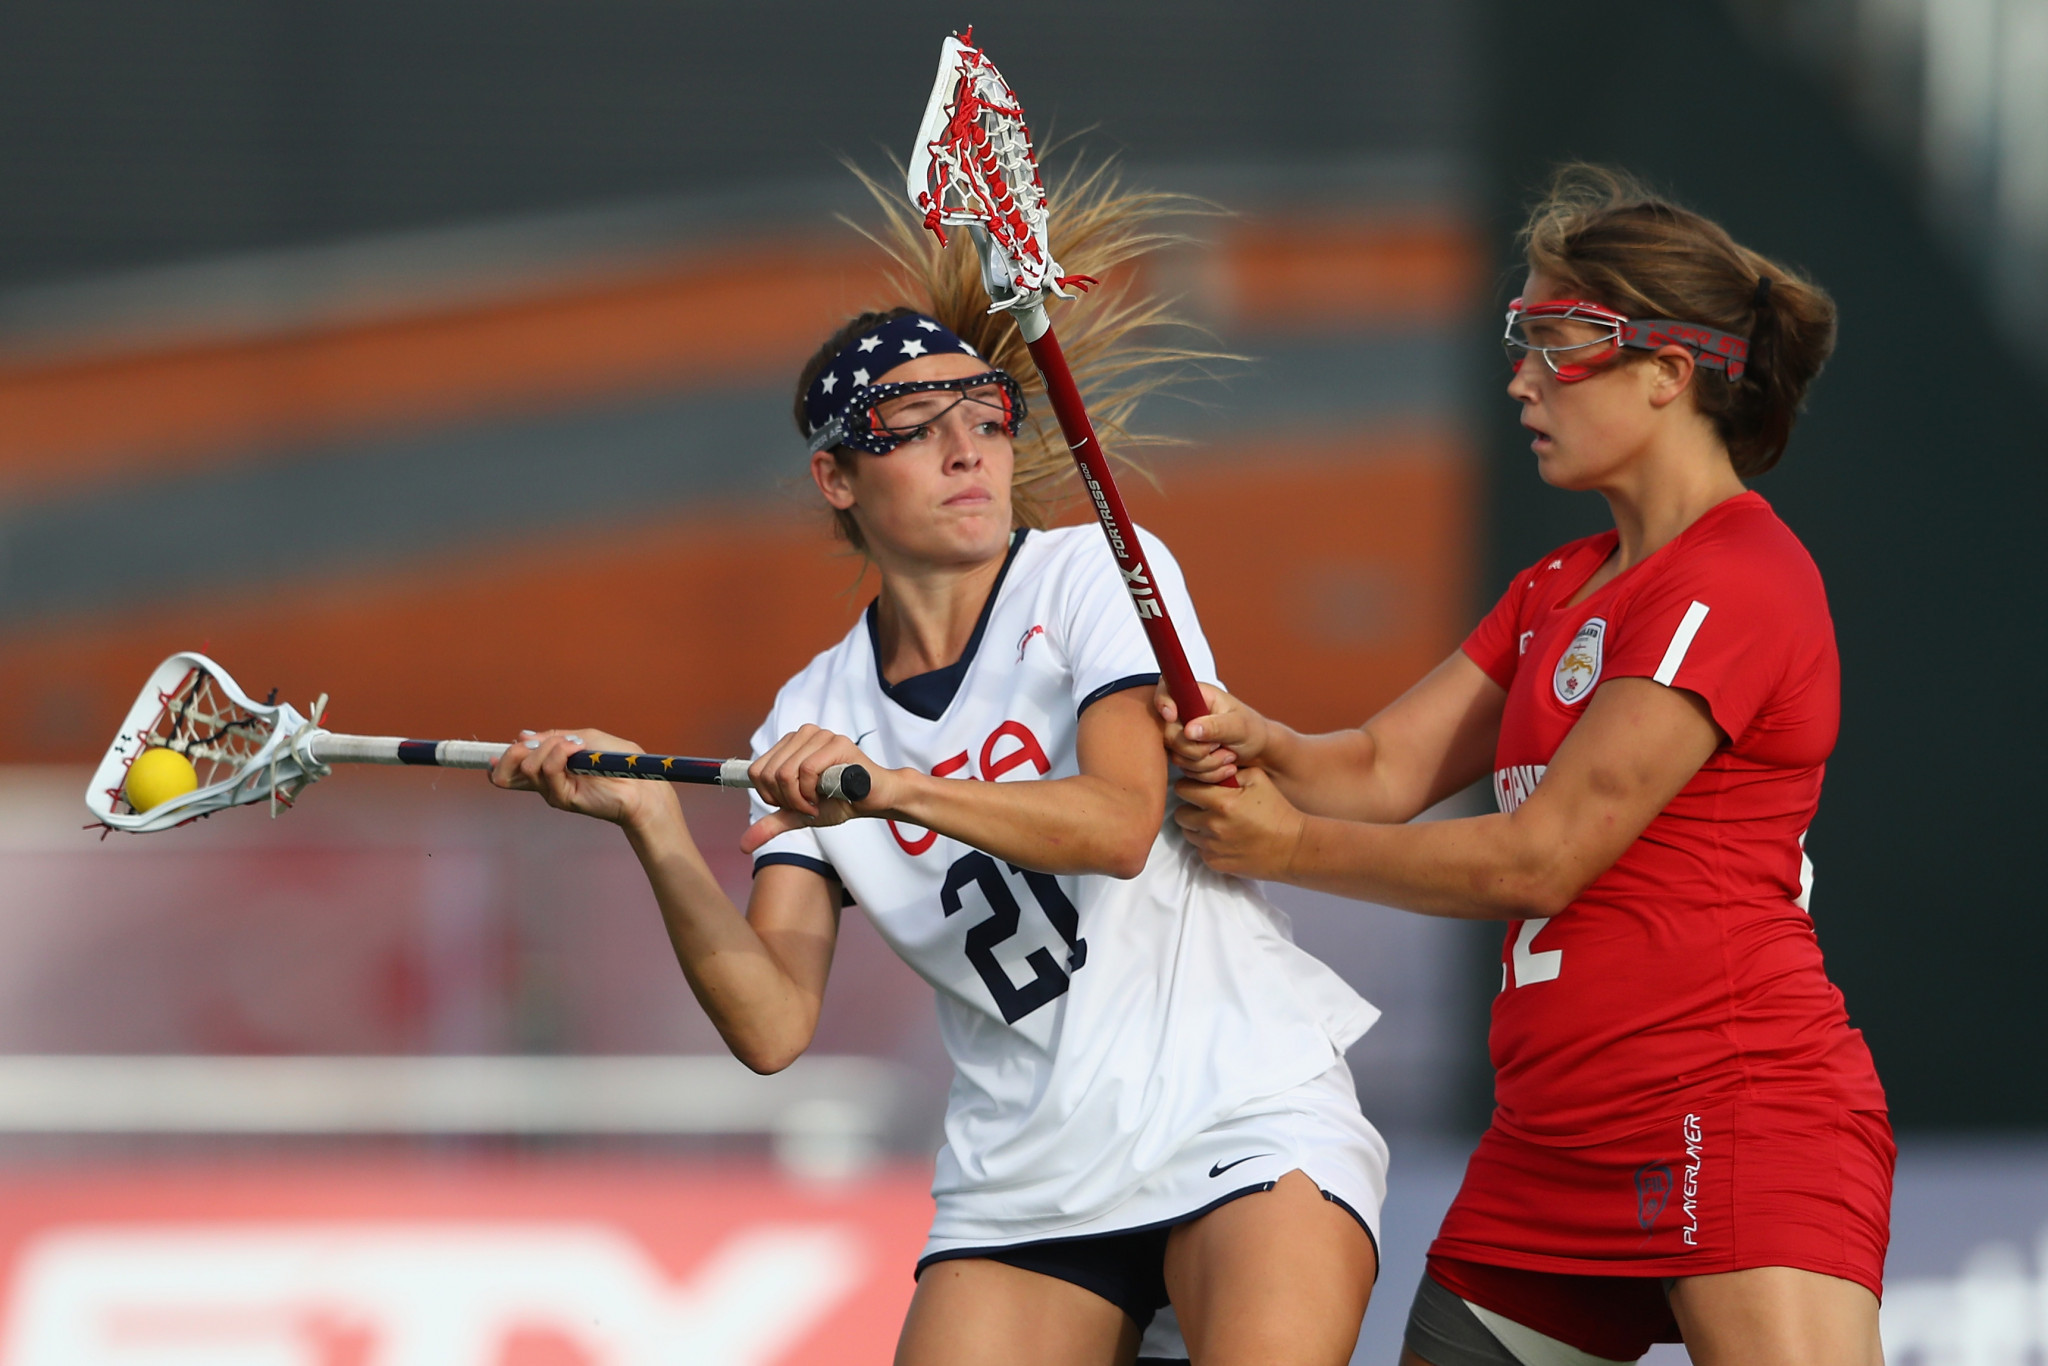 United States confirmed as top seed for 2022 Lacrosse Women's World Championship